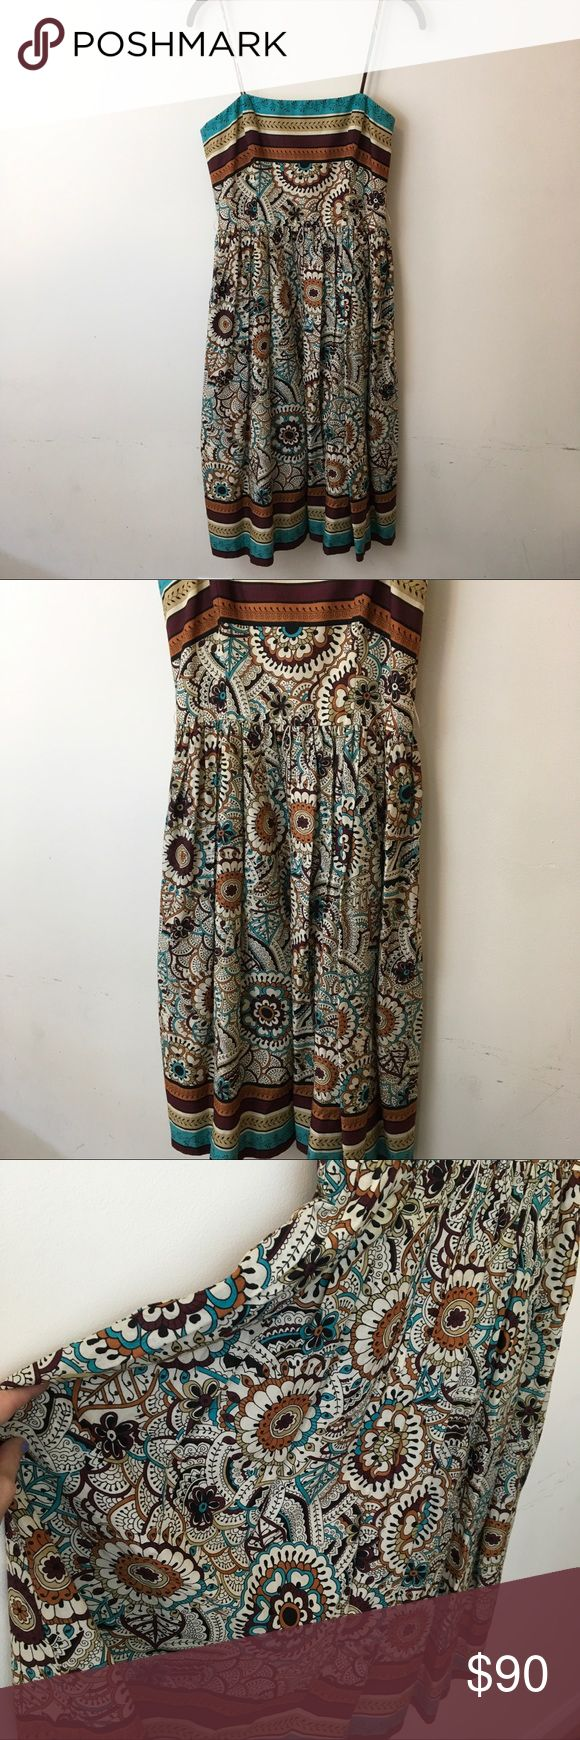 David Meister Floral Sleeveless Midi Dress David Meister Dress floral and is lined with a zipper closure. Worn once for an occasion. David Meister Dresses